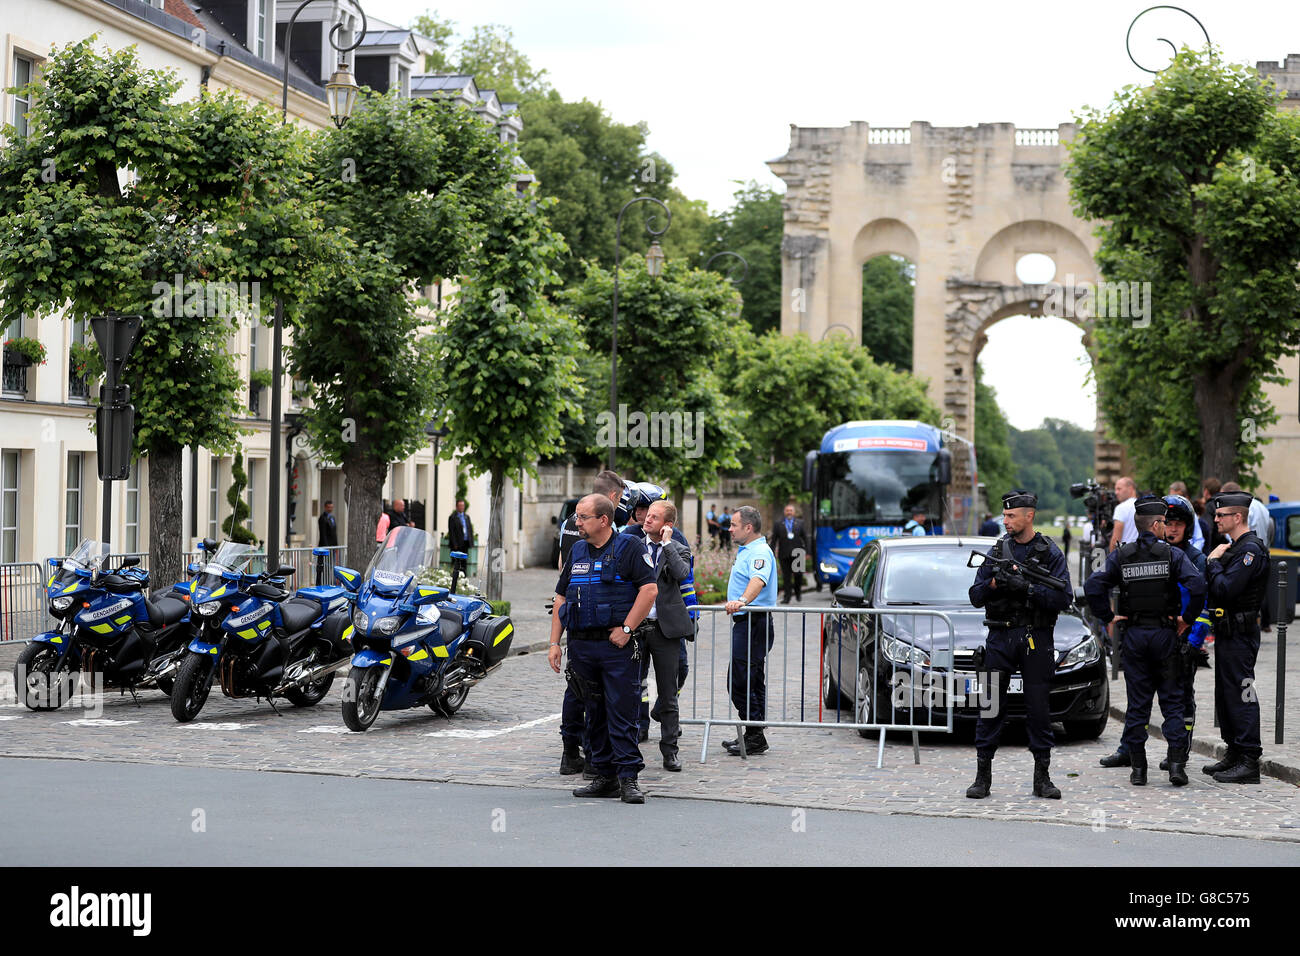 Heavy security presence as England arrive back to the team hotel in Chantilly, France. England were knocked out at the round of 16 stage of the 2016 European Championships last night after losing 2-1 to Iceland. Stock Photo